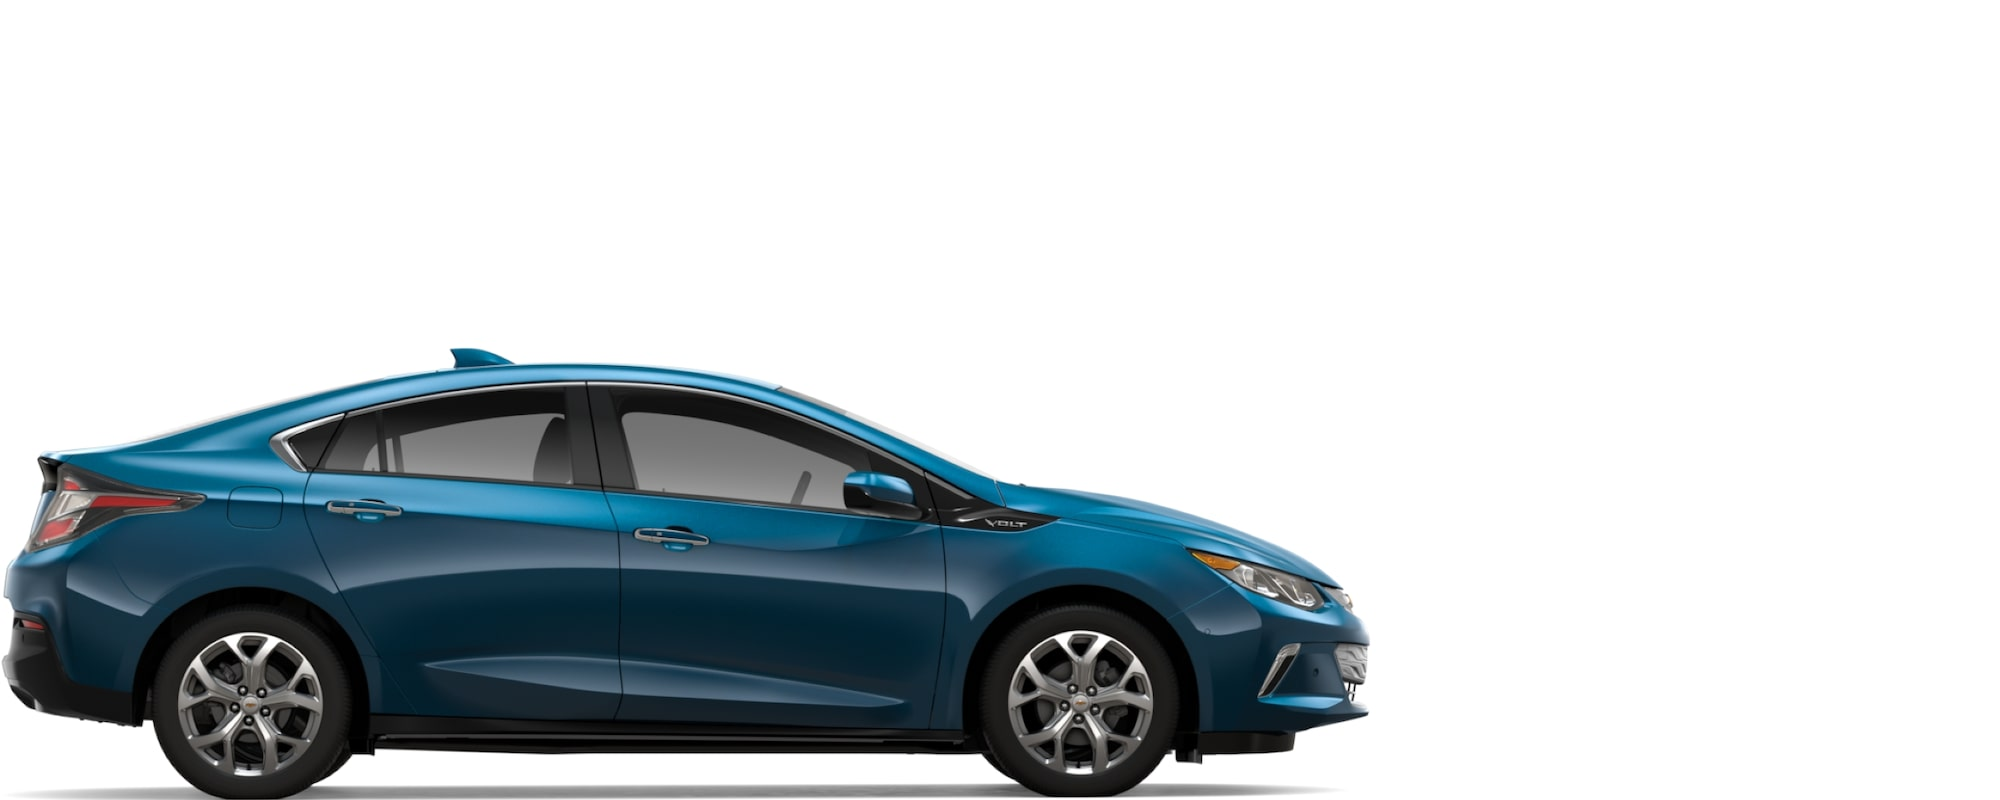 Chevy Volt Vehicle Schematic Wire Center Engine Diagram 2019 Bolt Ev Electric Car An Affordable All Rh Chevrolet Com Battery Gm 12 System